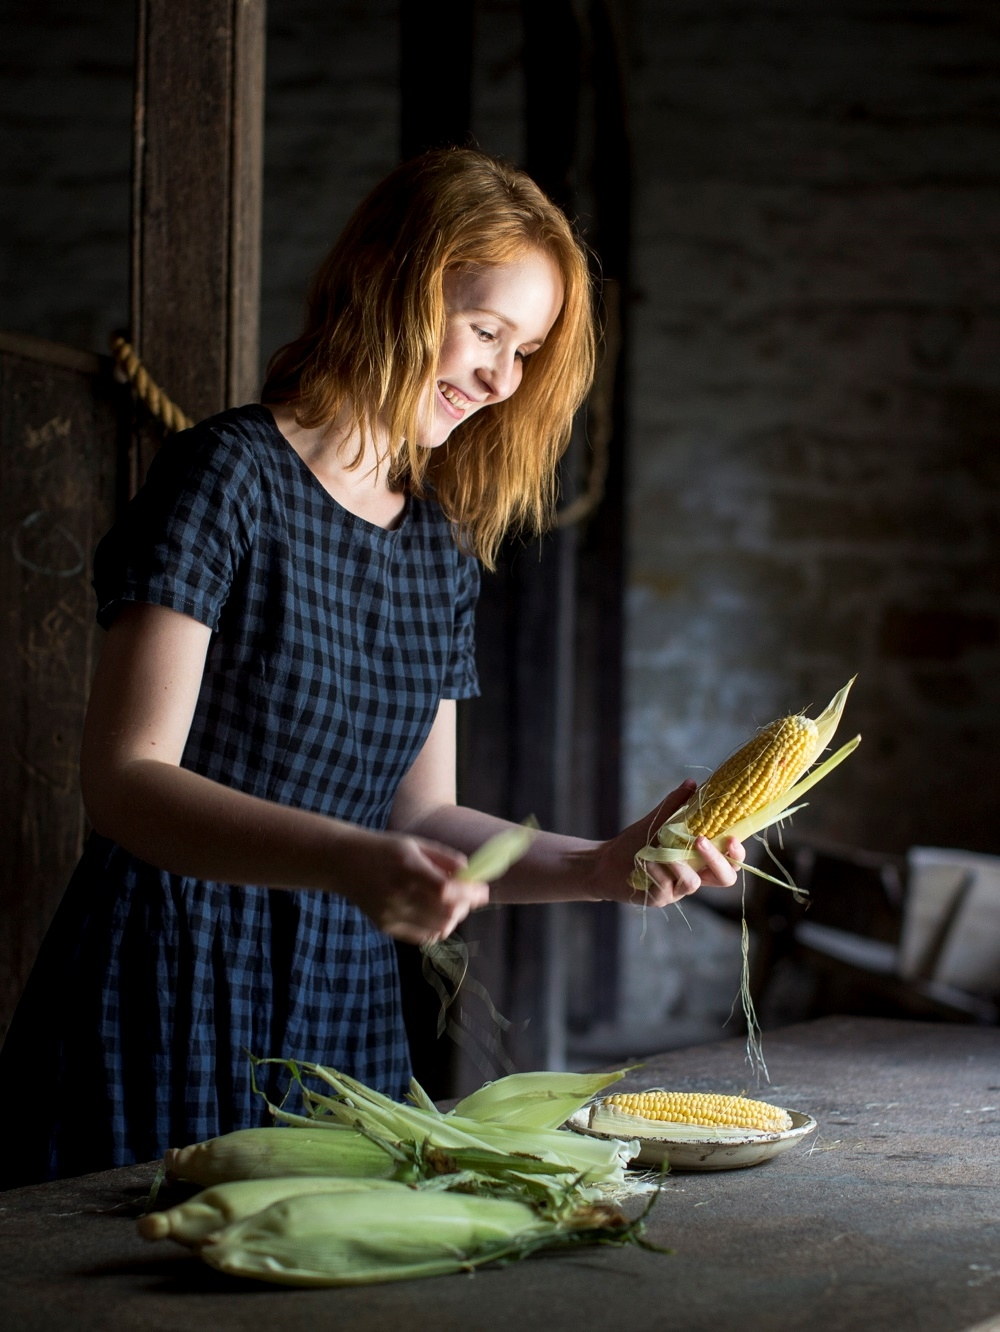 Photograph of a person peeling corn